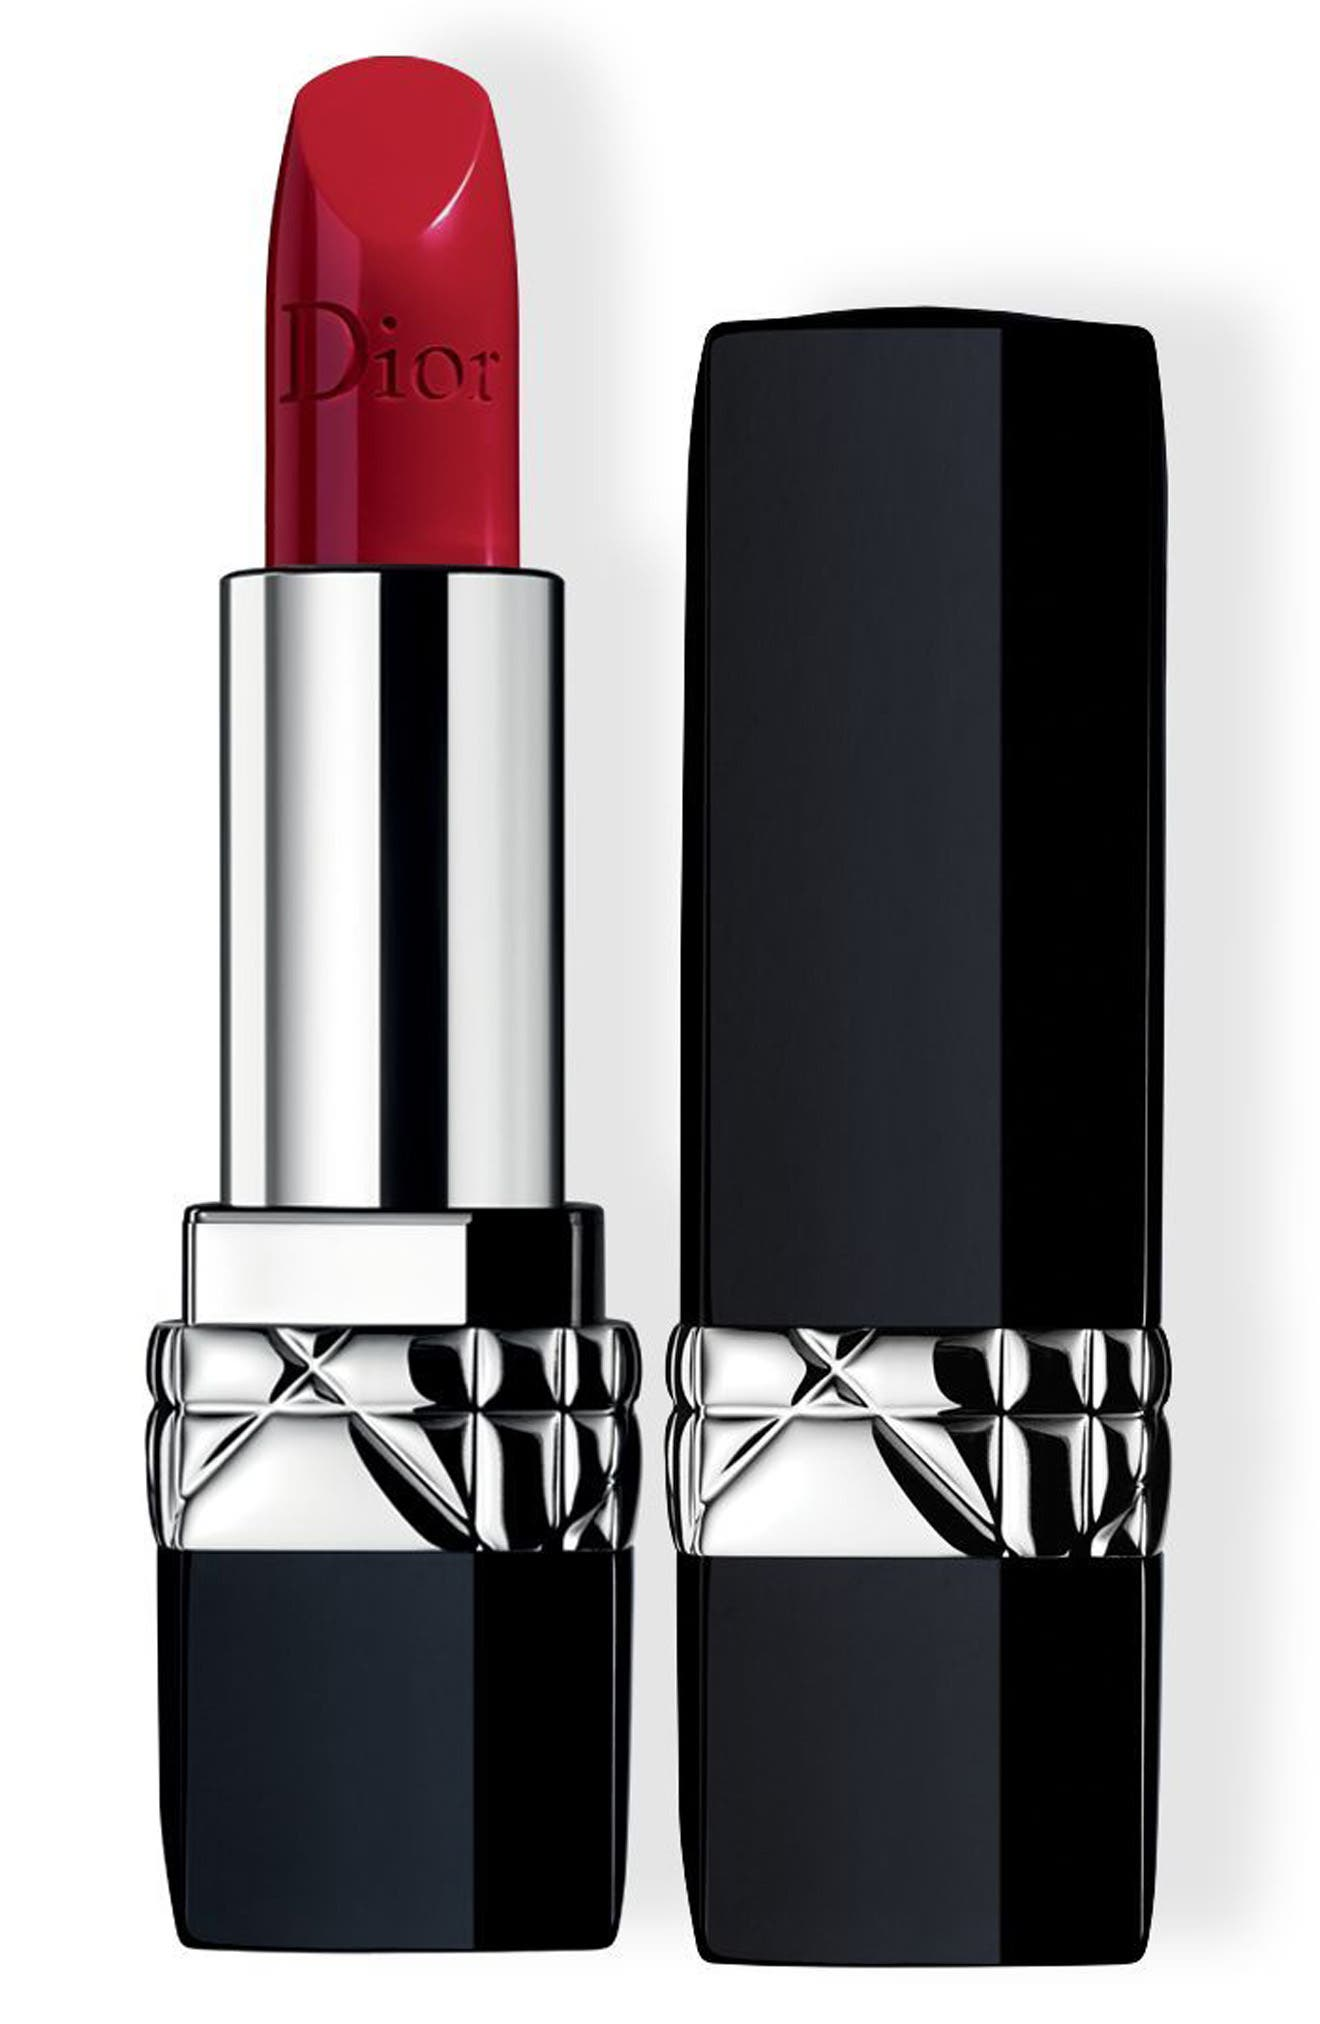 Dior Couture Color Rouge Dior Lipstick - 762 Opera